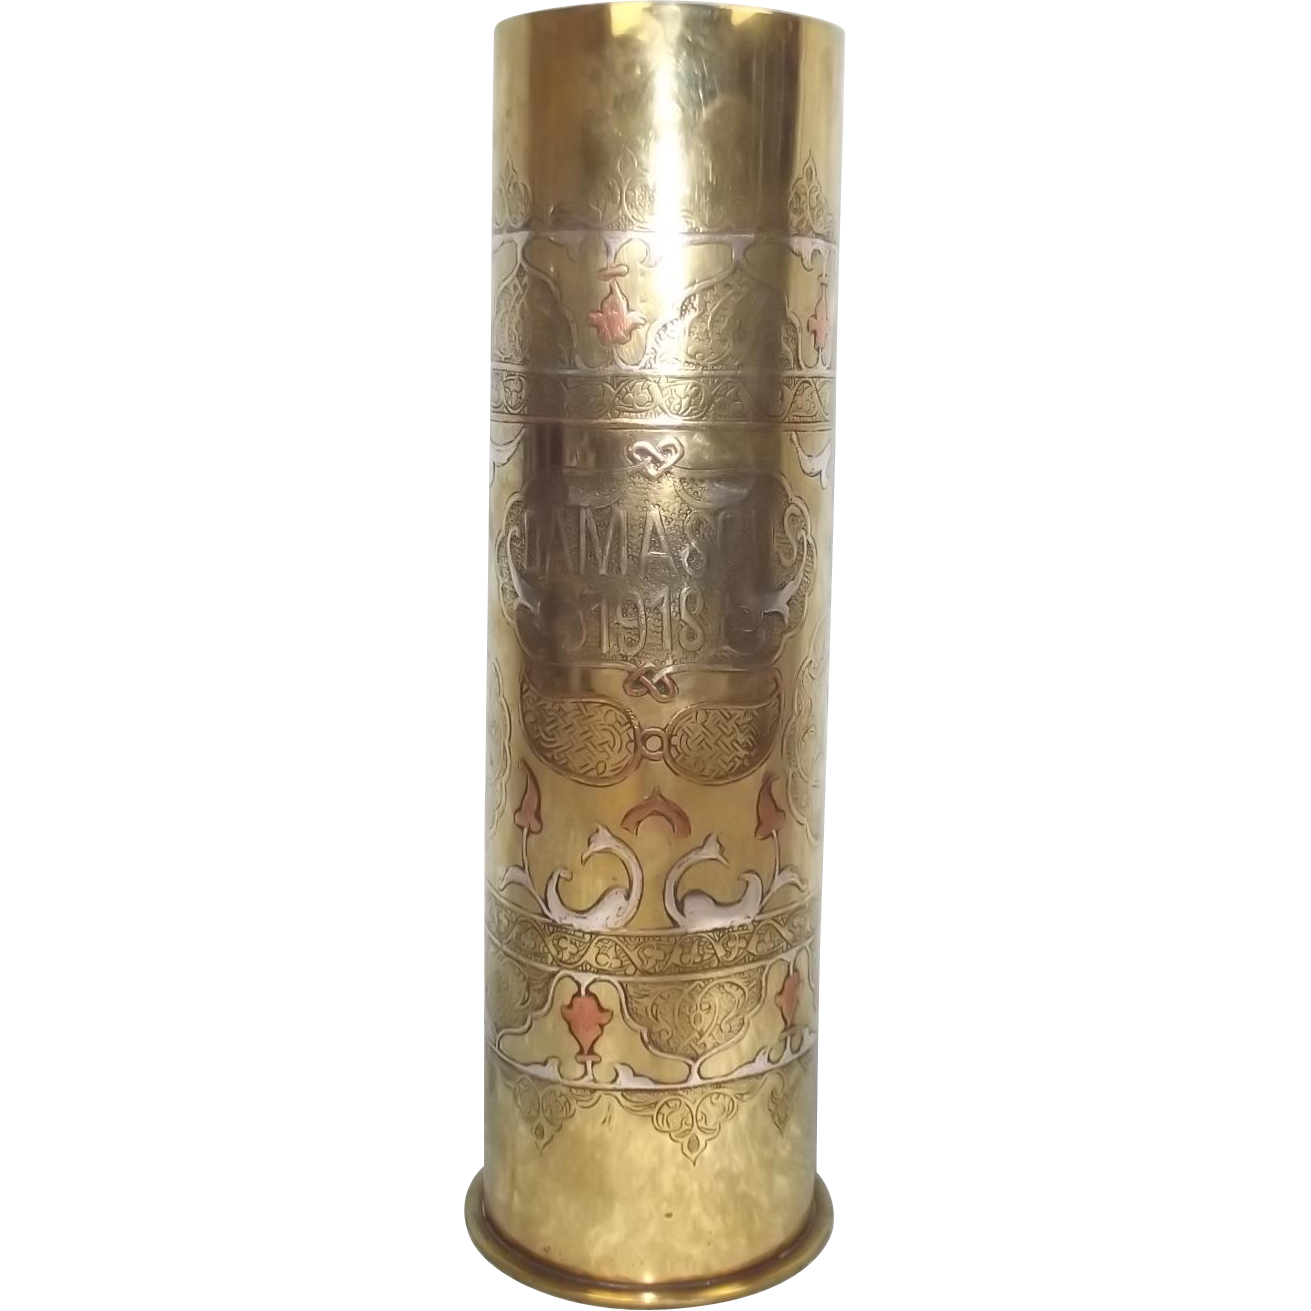 1918 WW1 Silver Inlay Damascus Trench Art Tobacco Jar Shell Case